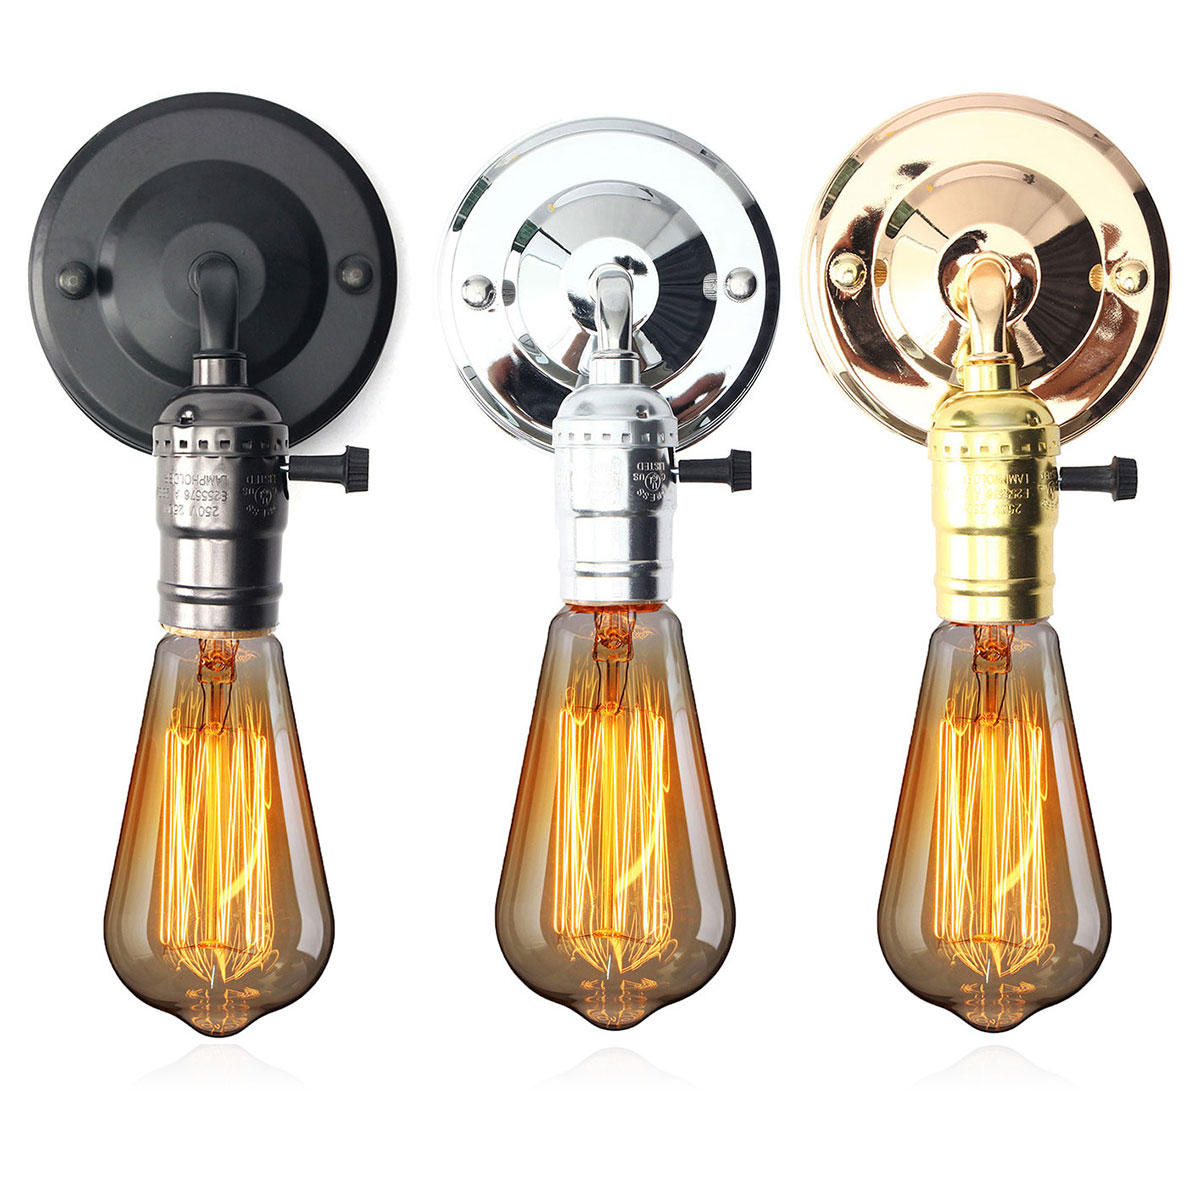 Wall Sconce Light With Switch: E27 Antique Vintage Switch Type Wall Light Sconce Lamp